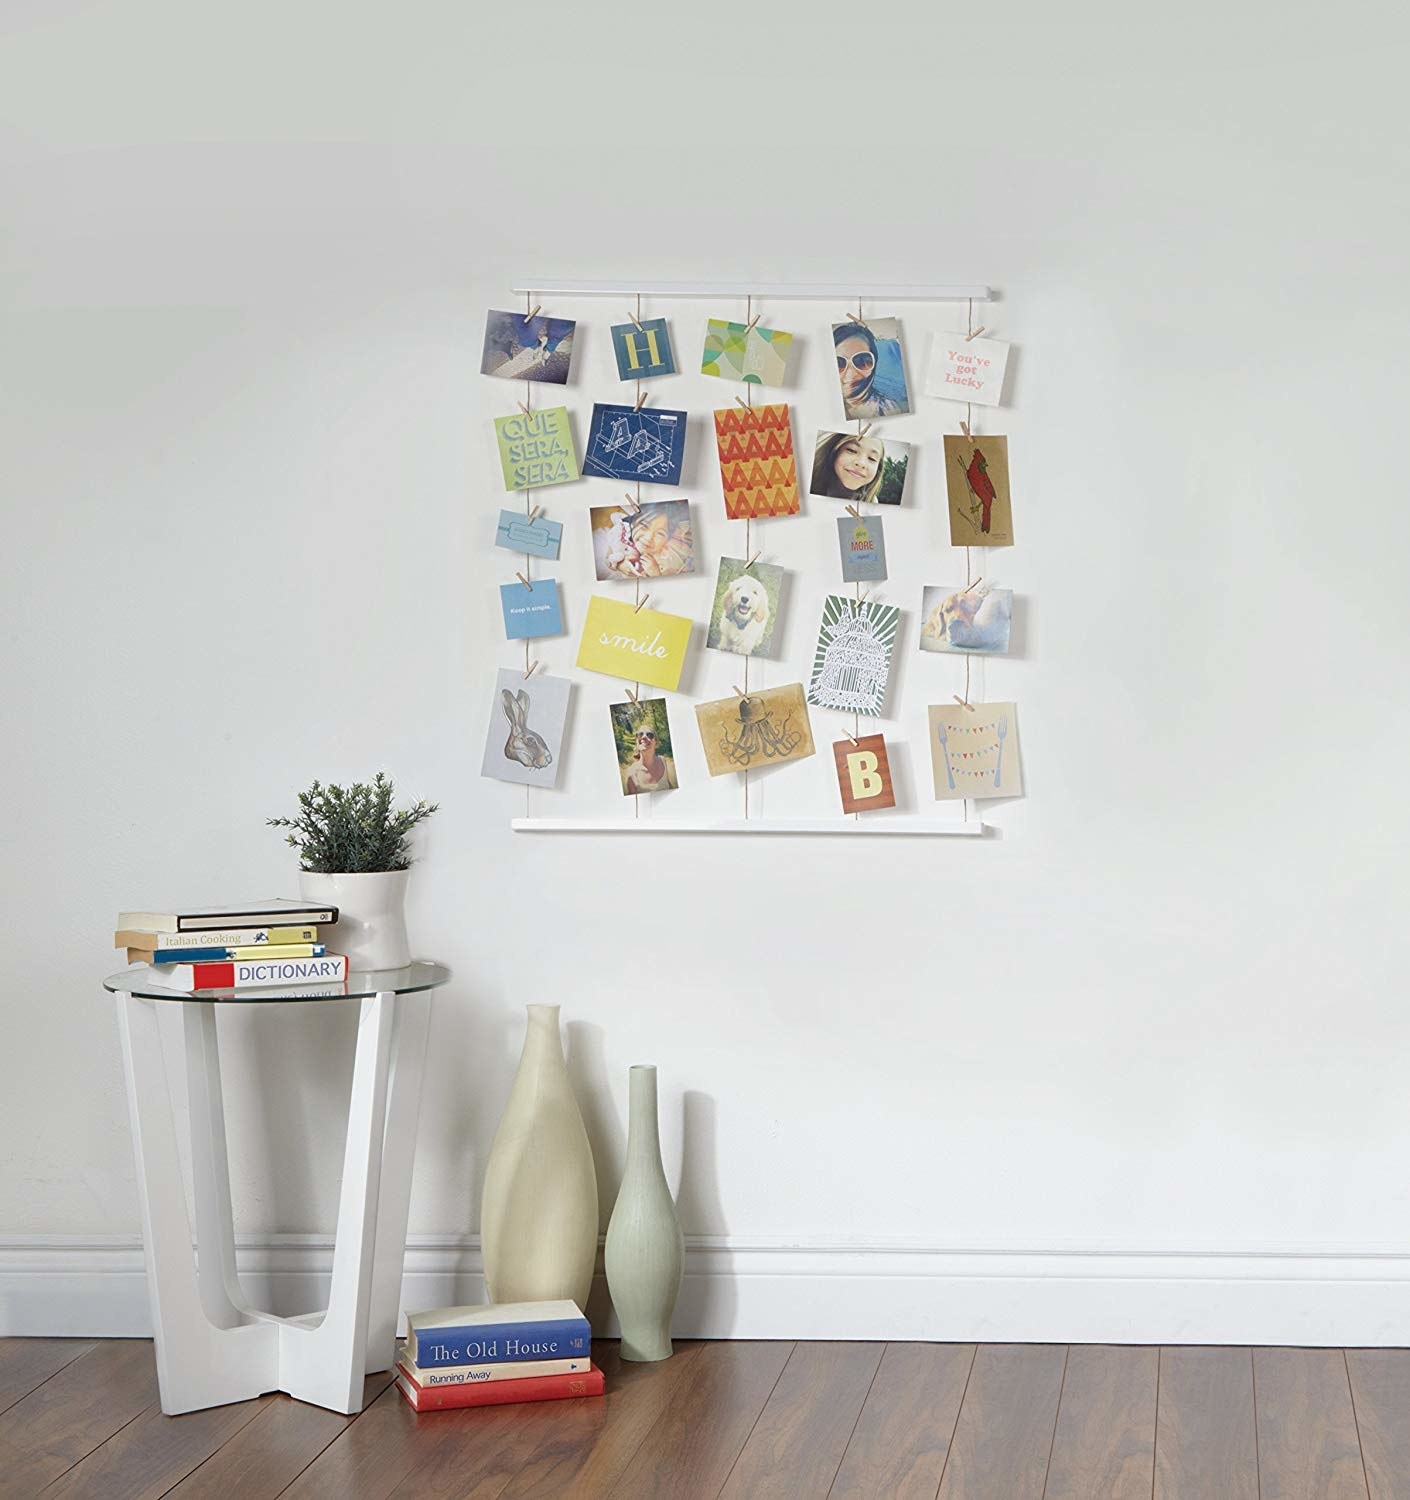 A bunch of photos clipped to a set of strings on the wall